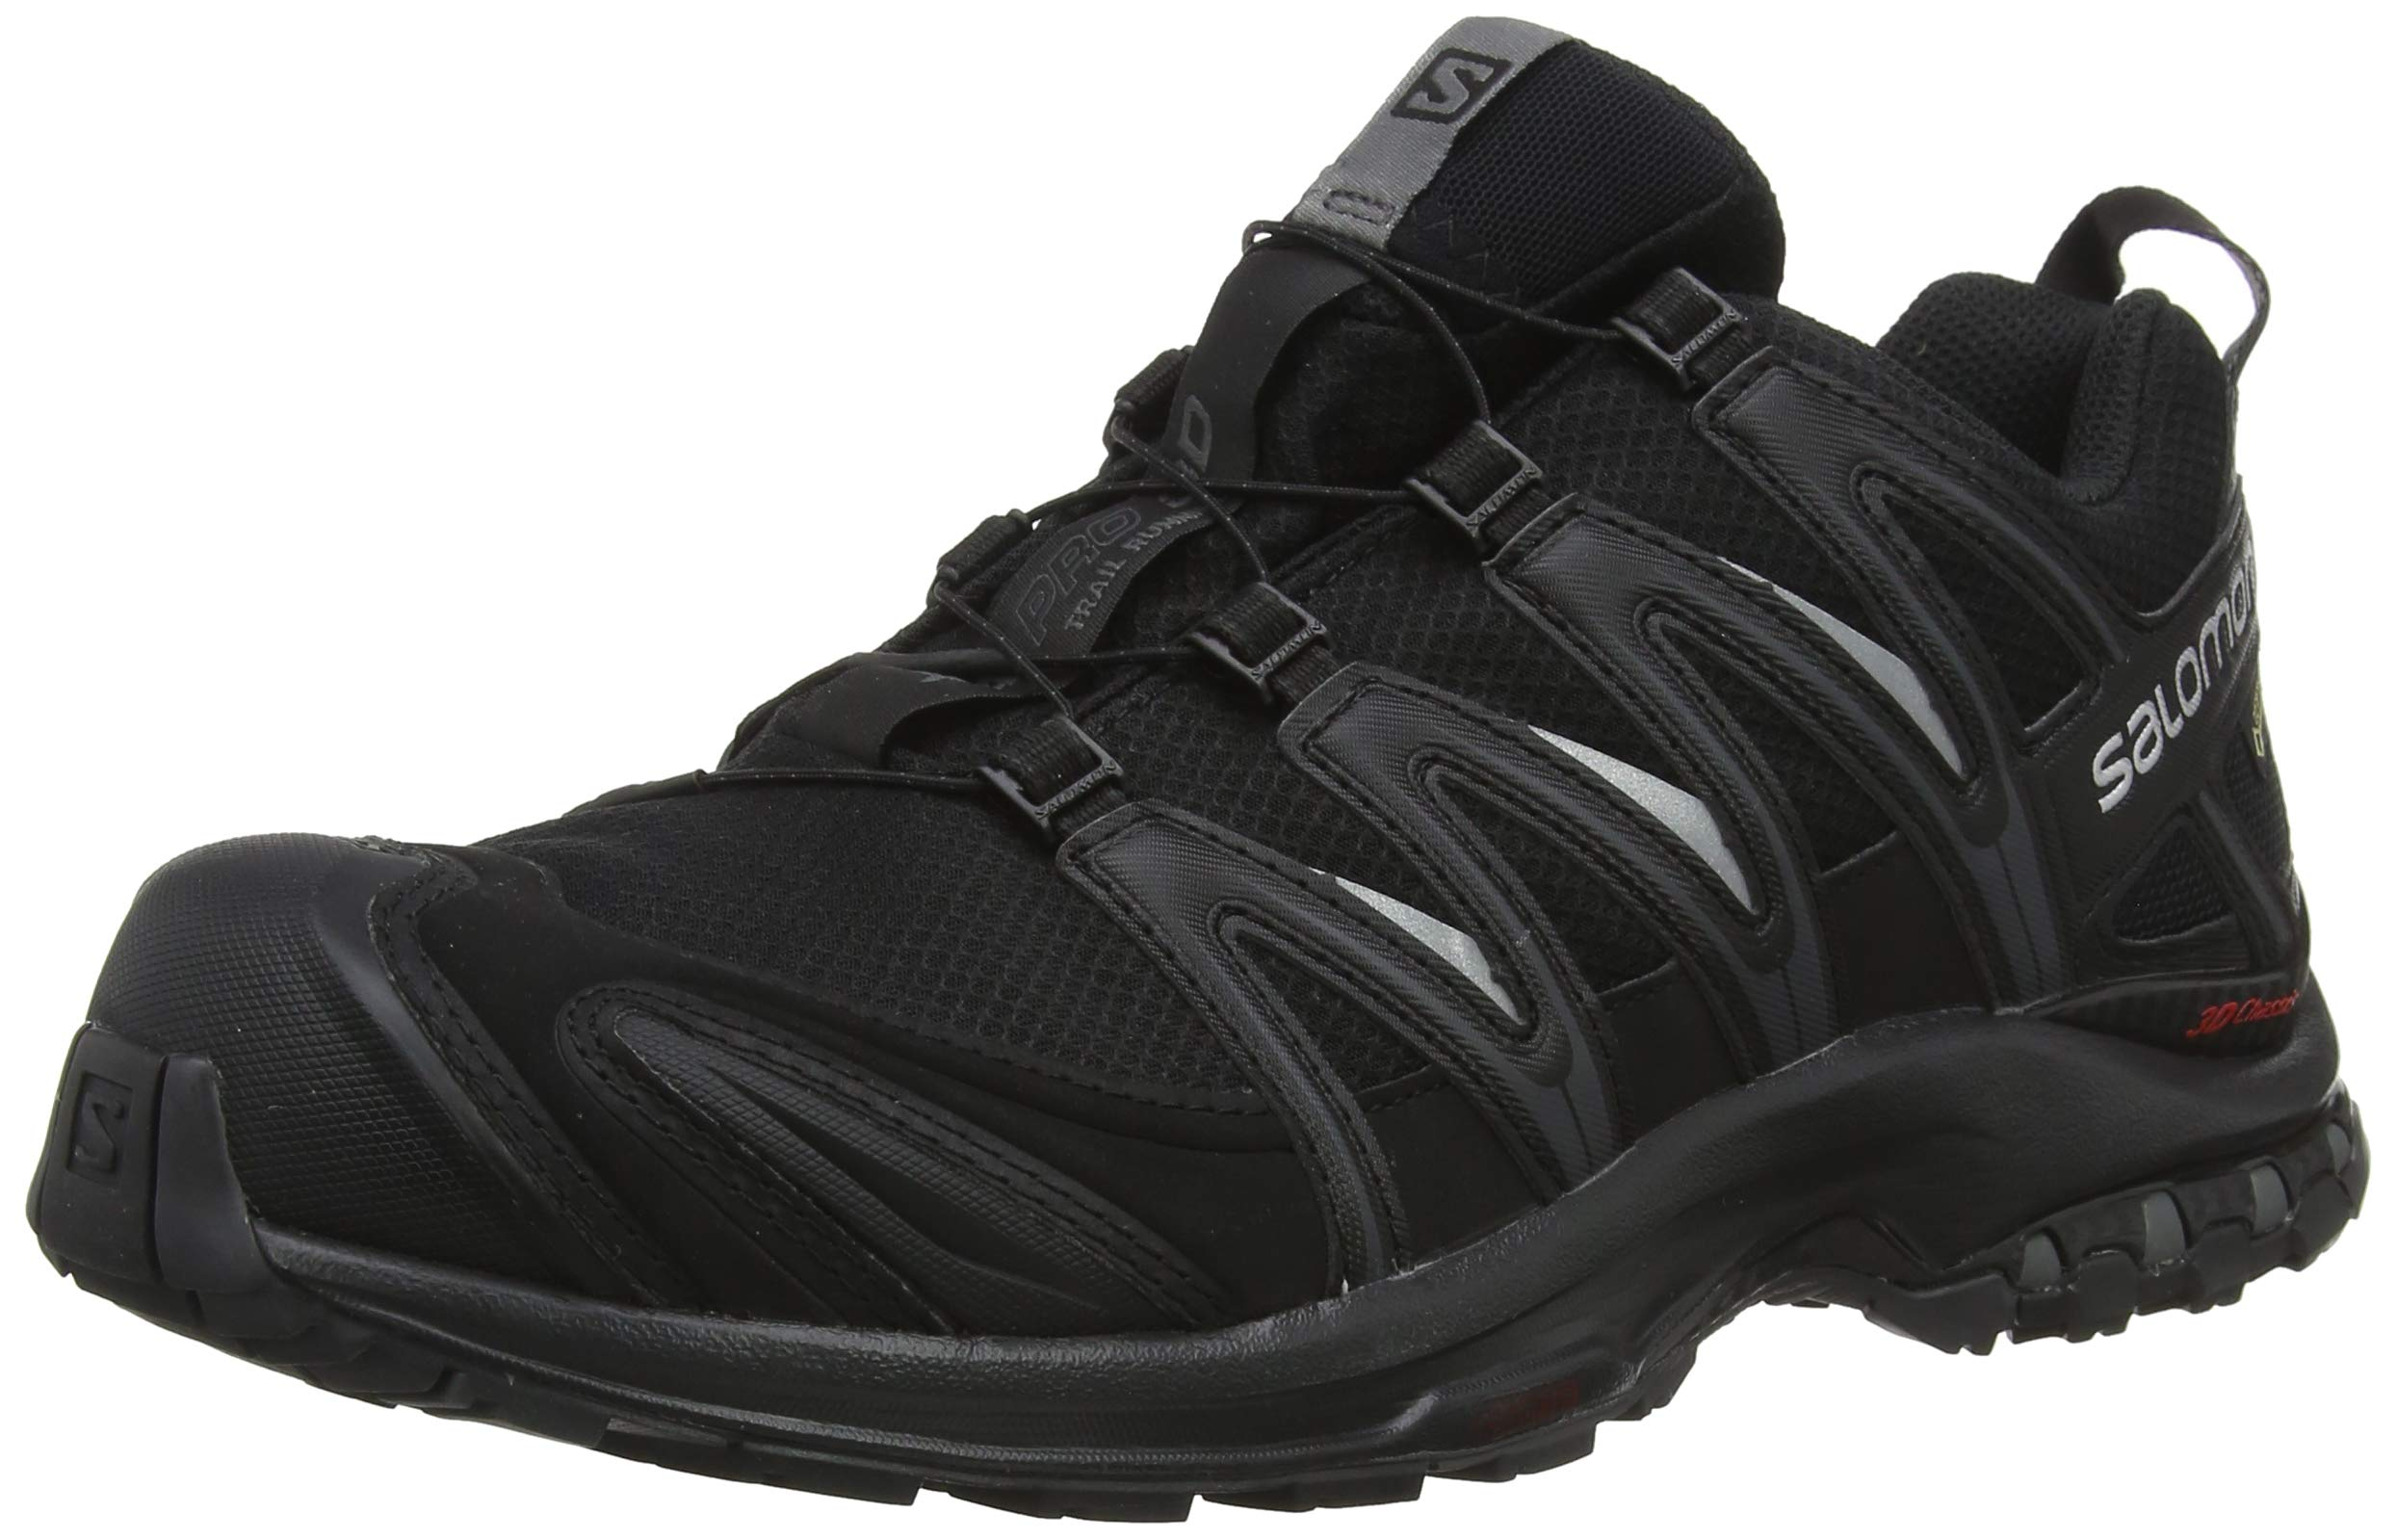 SALOMON XA Pro 3D GTX Mens Trail Running Shoes Black/Black/Magnet Sz 11 by SALOMON